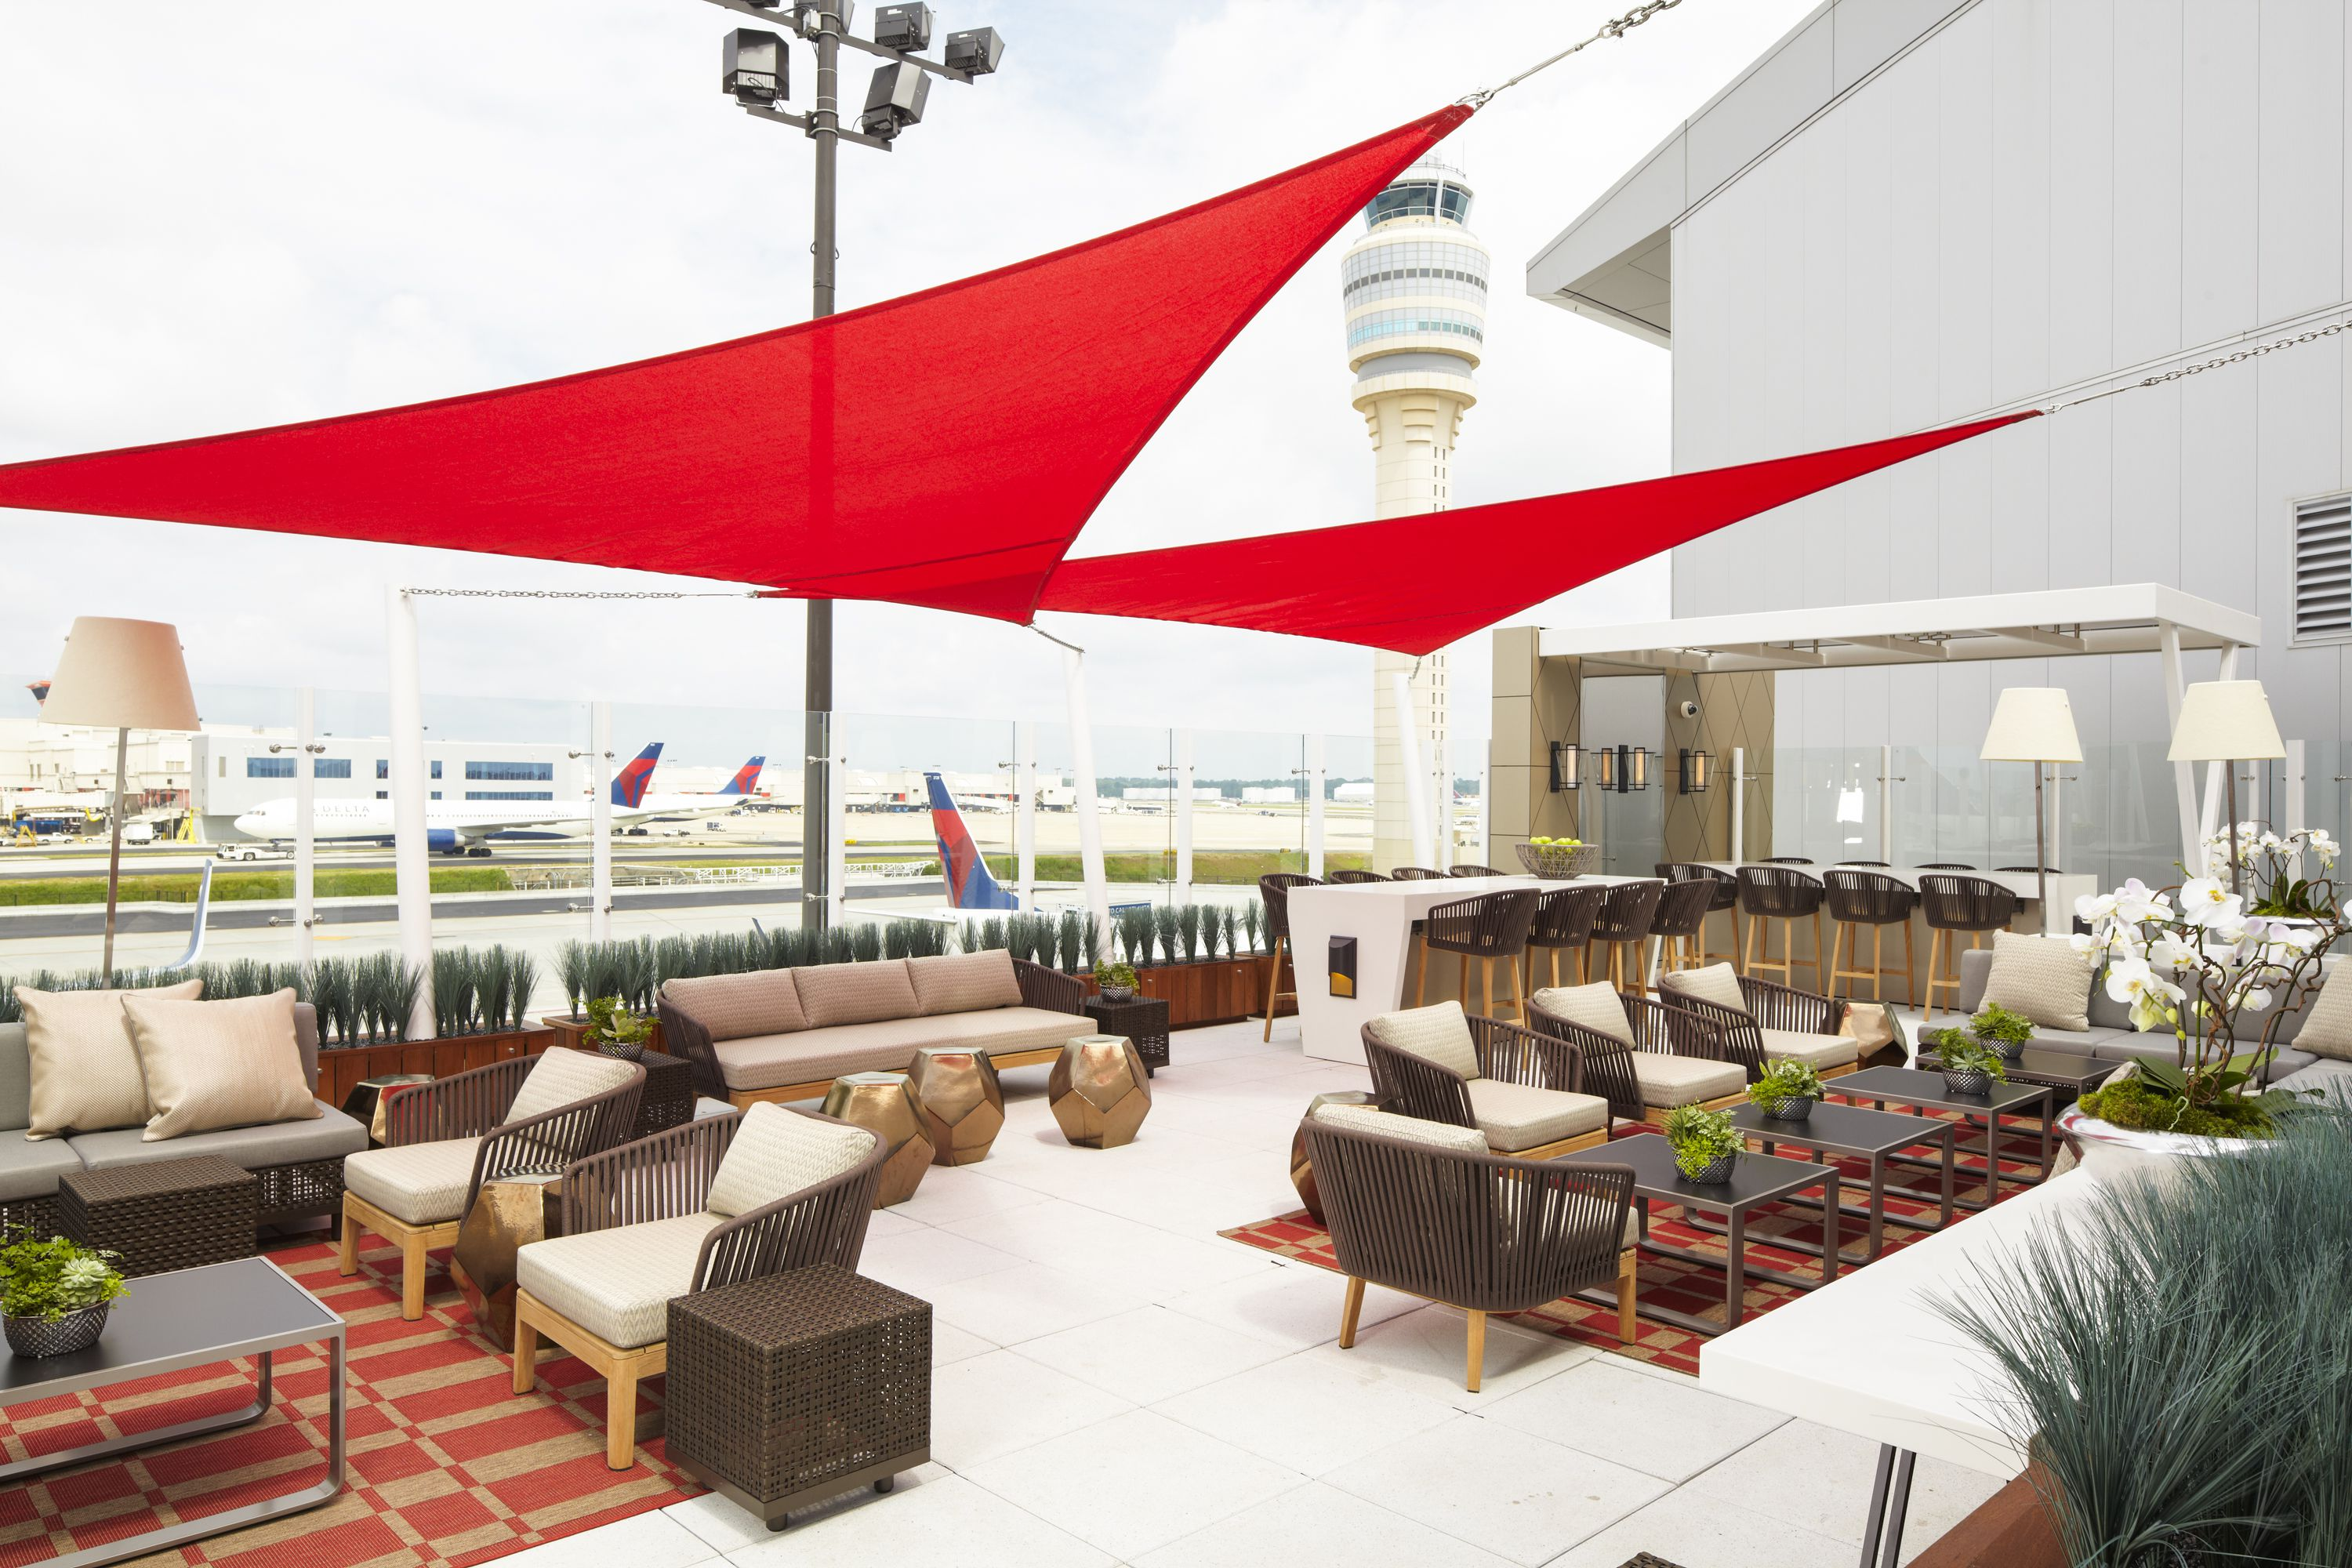 The outdoor terrace at Delta Air Lines' Sky Club in Concourse F at Hartsfield-Jackson International Airport.